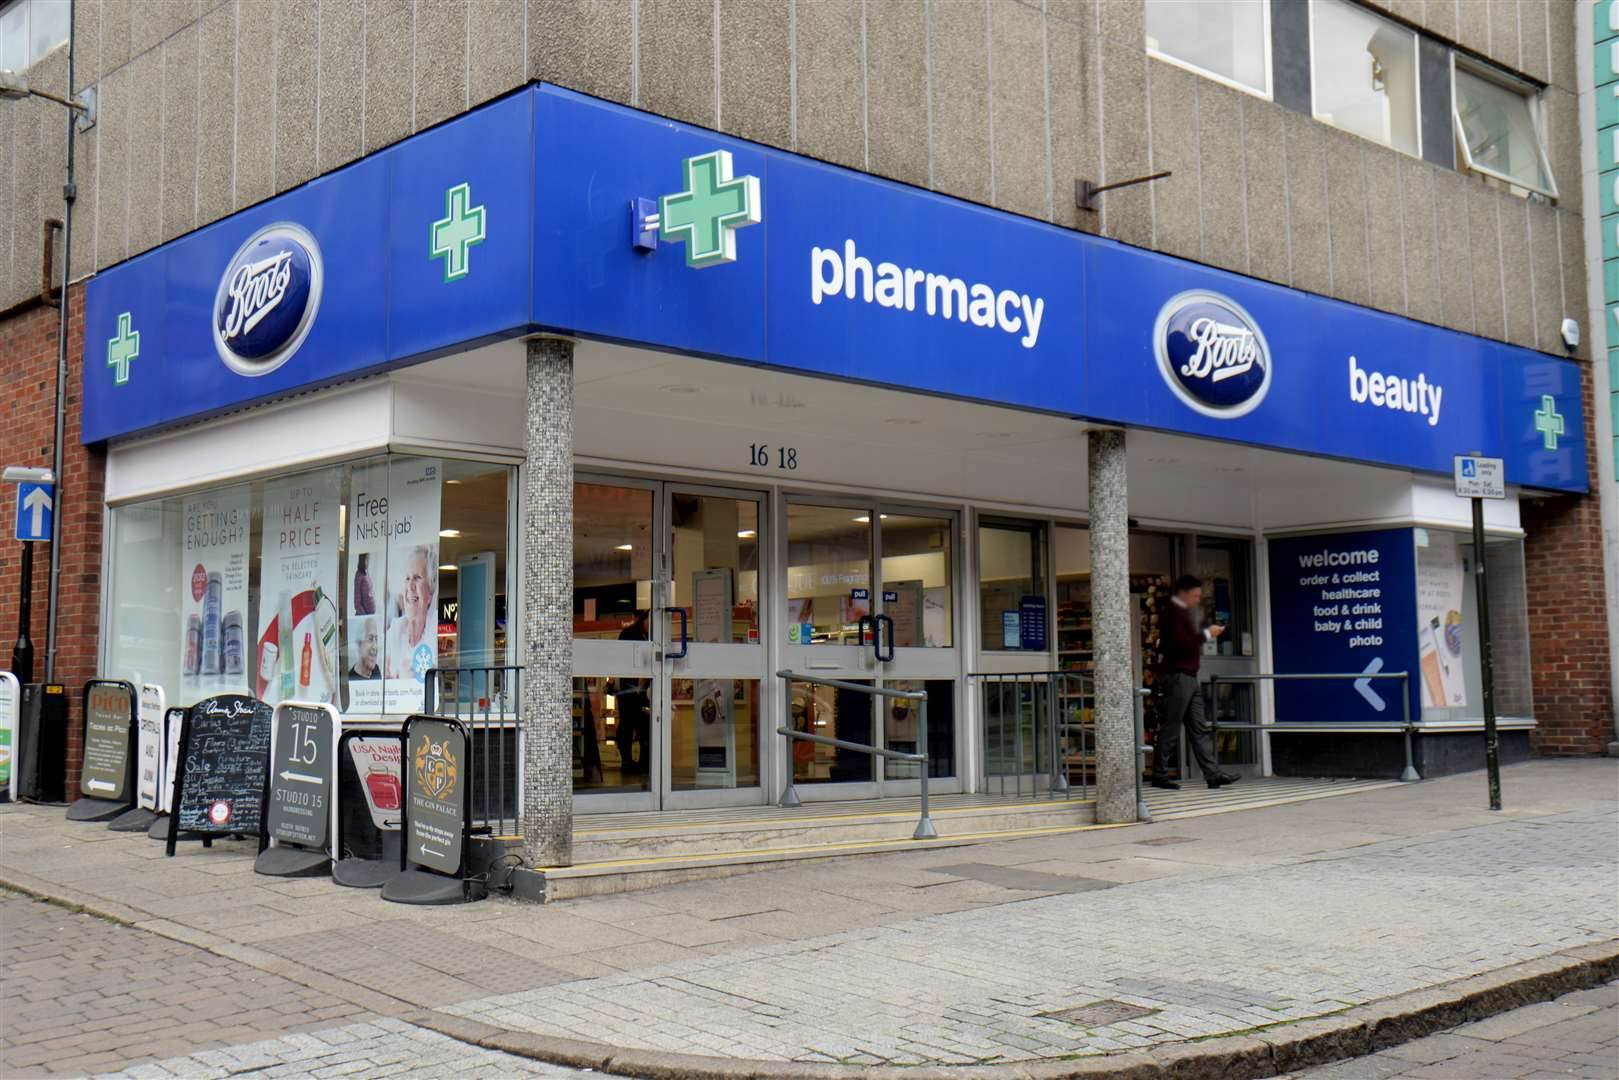 Appointments at Boots stores across the UK are now available to book for September onwards